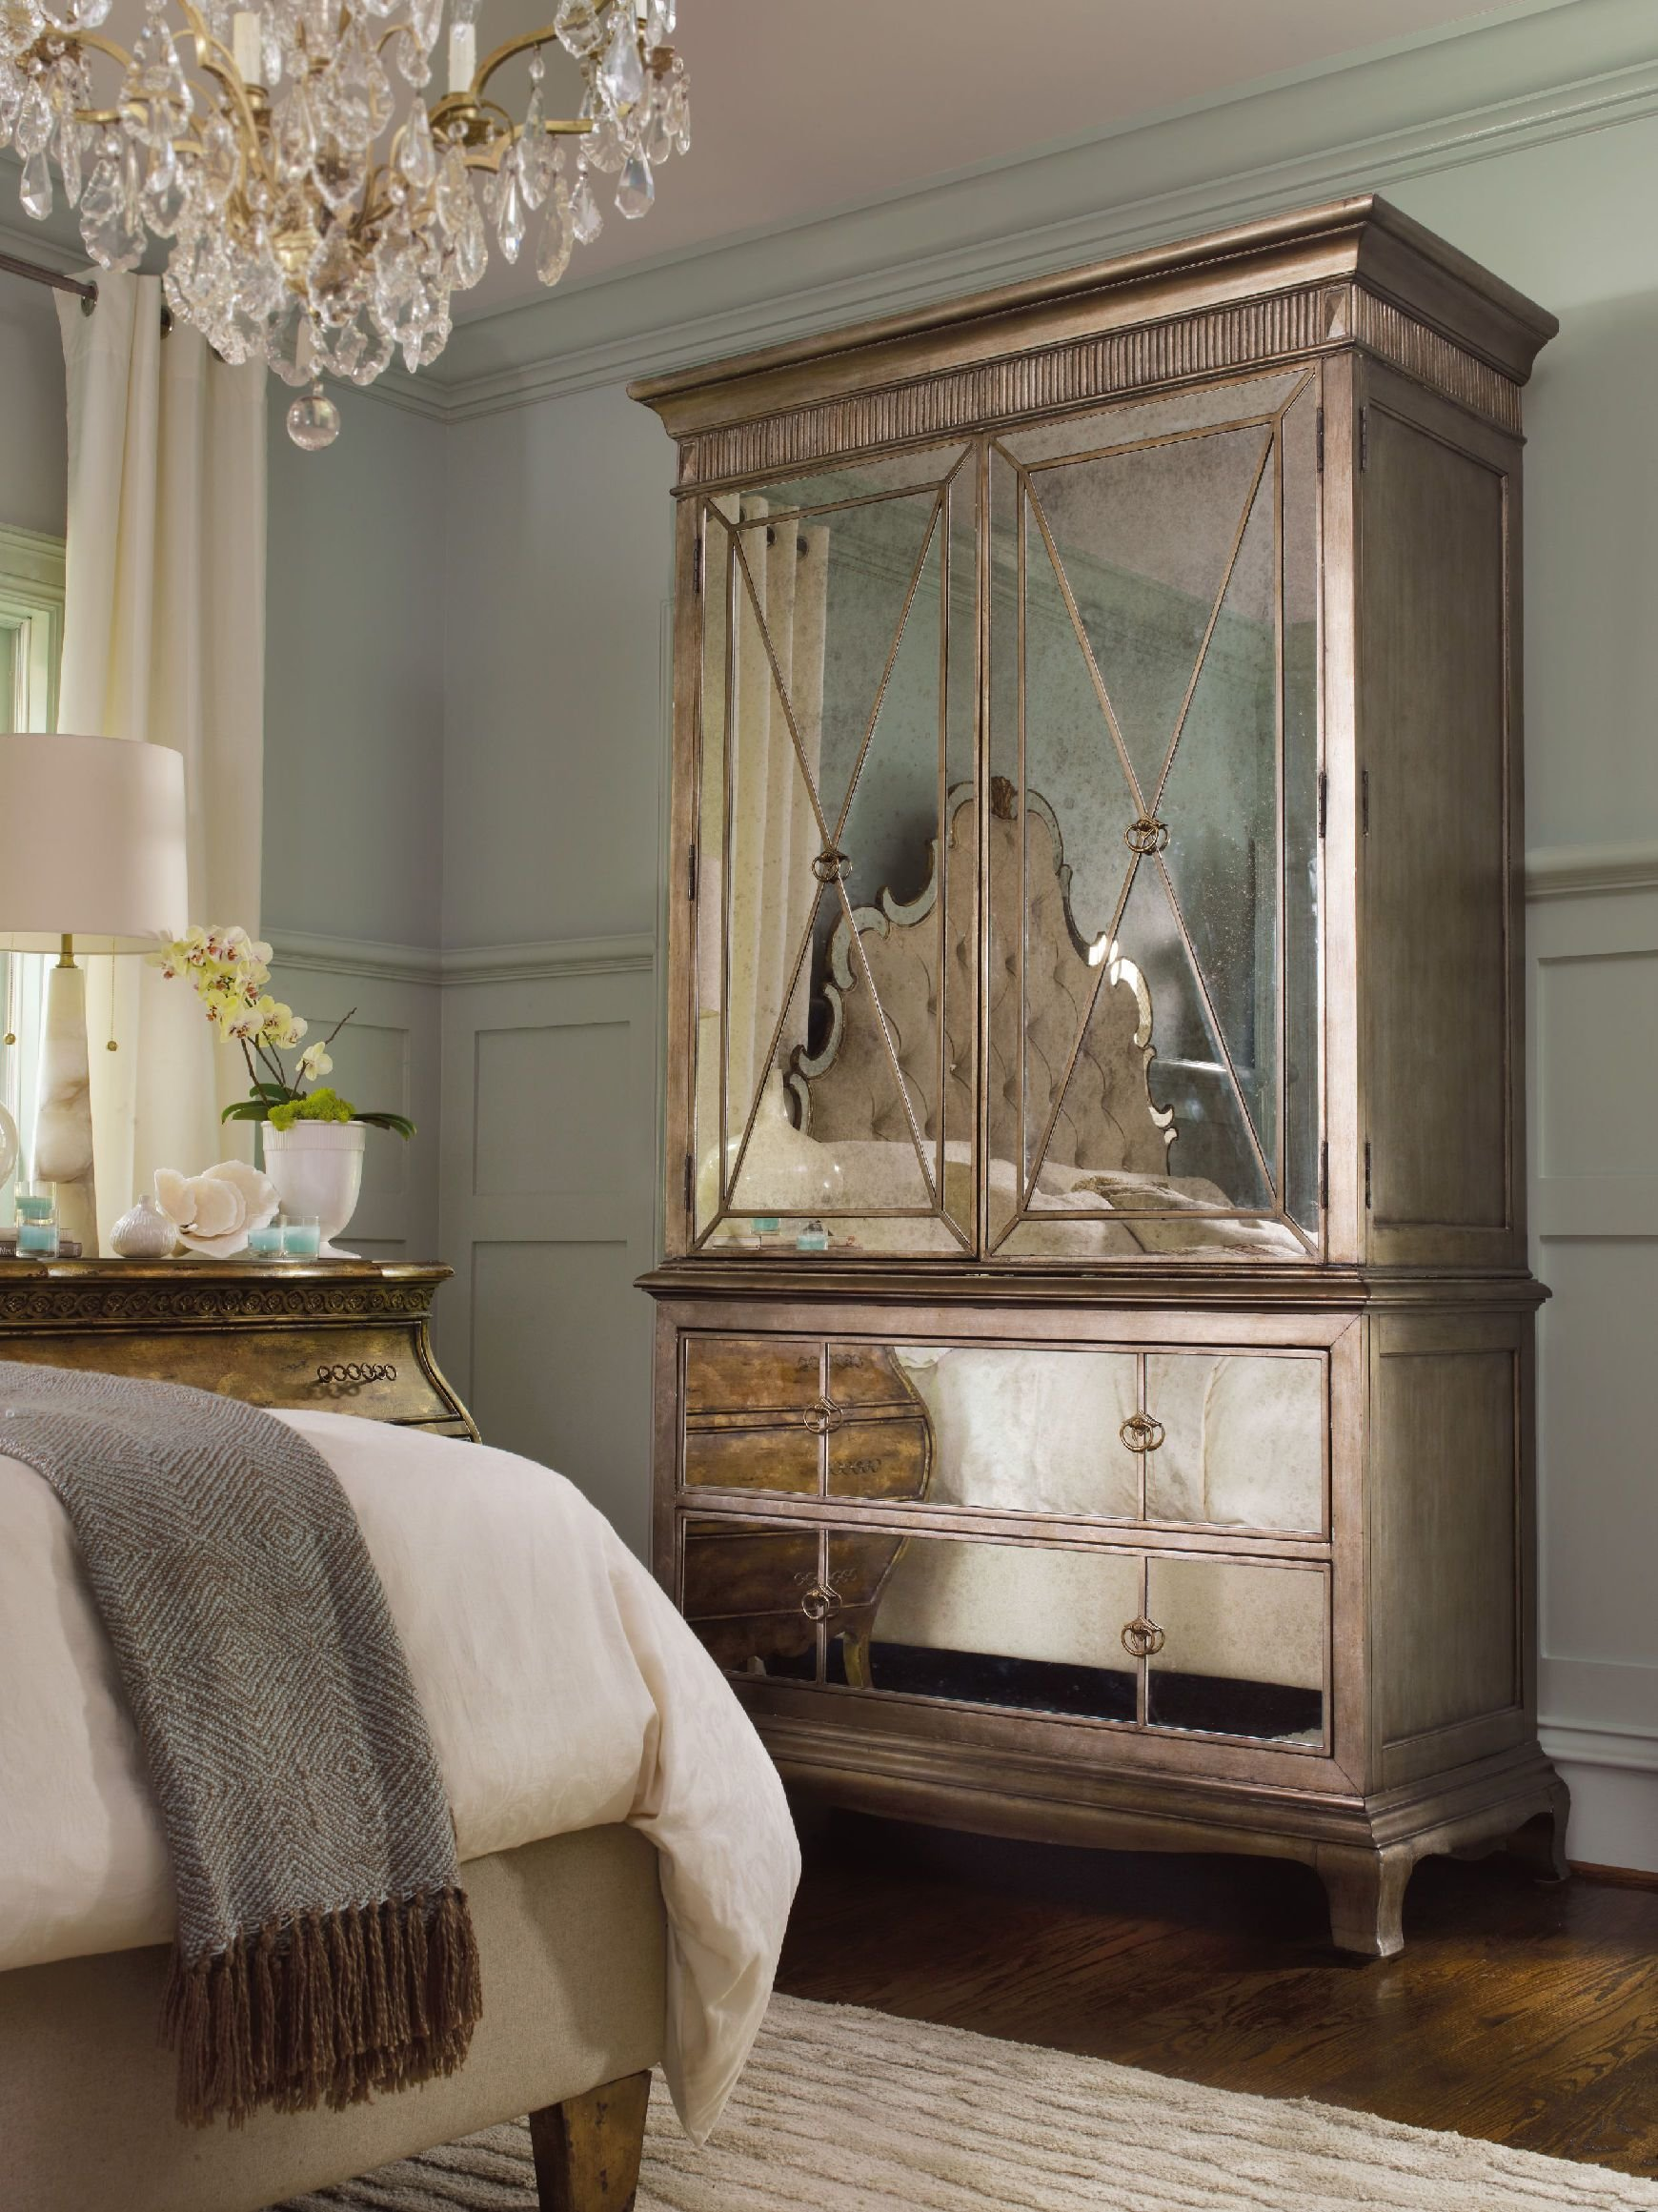 Best H**K*R Furniture Bedroom Sanctuary Armoire Visage 3016 With Pictures